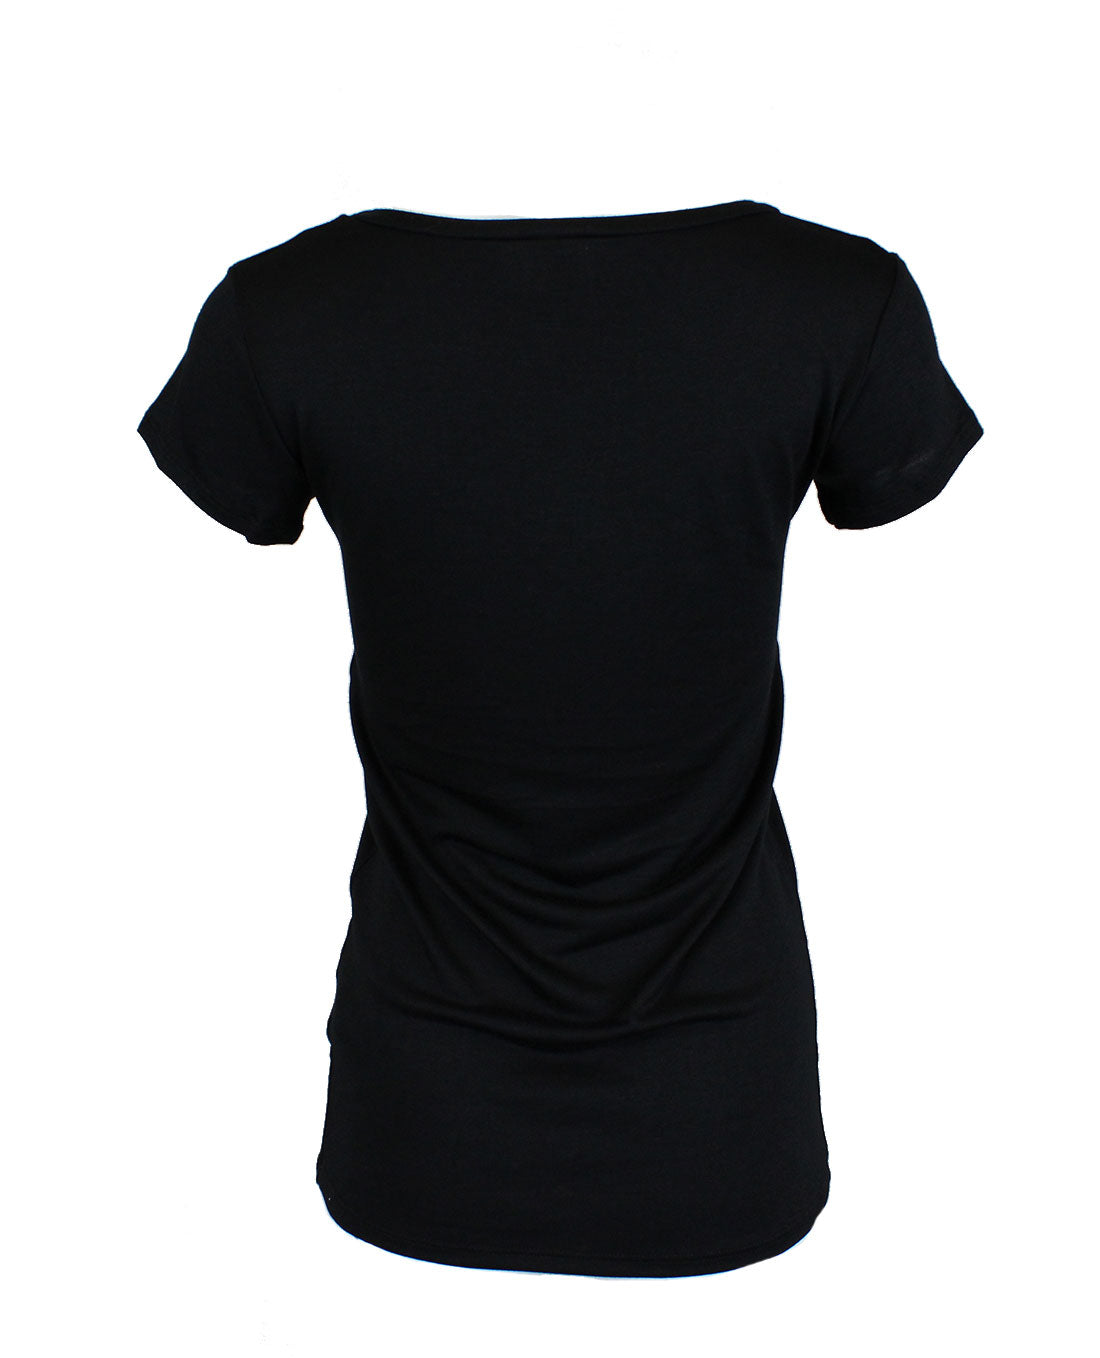 Good Vibe Tribe Scoop Neck Shirt in Black Tops- Niobe Clothing